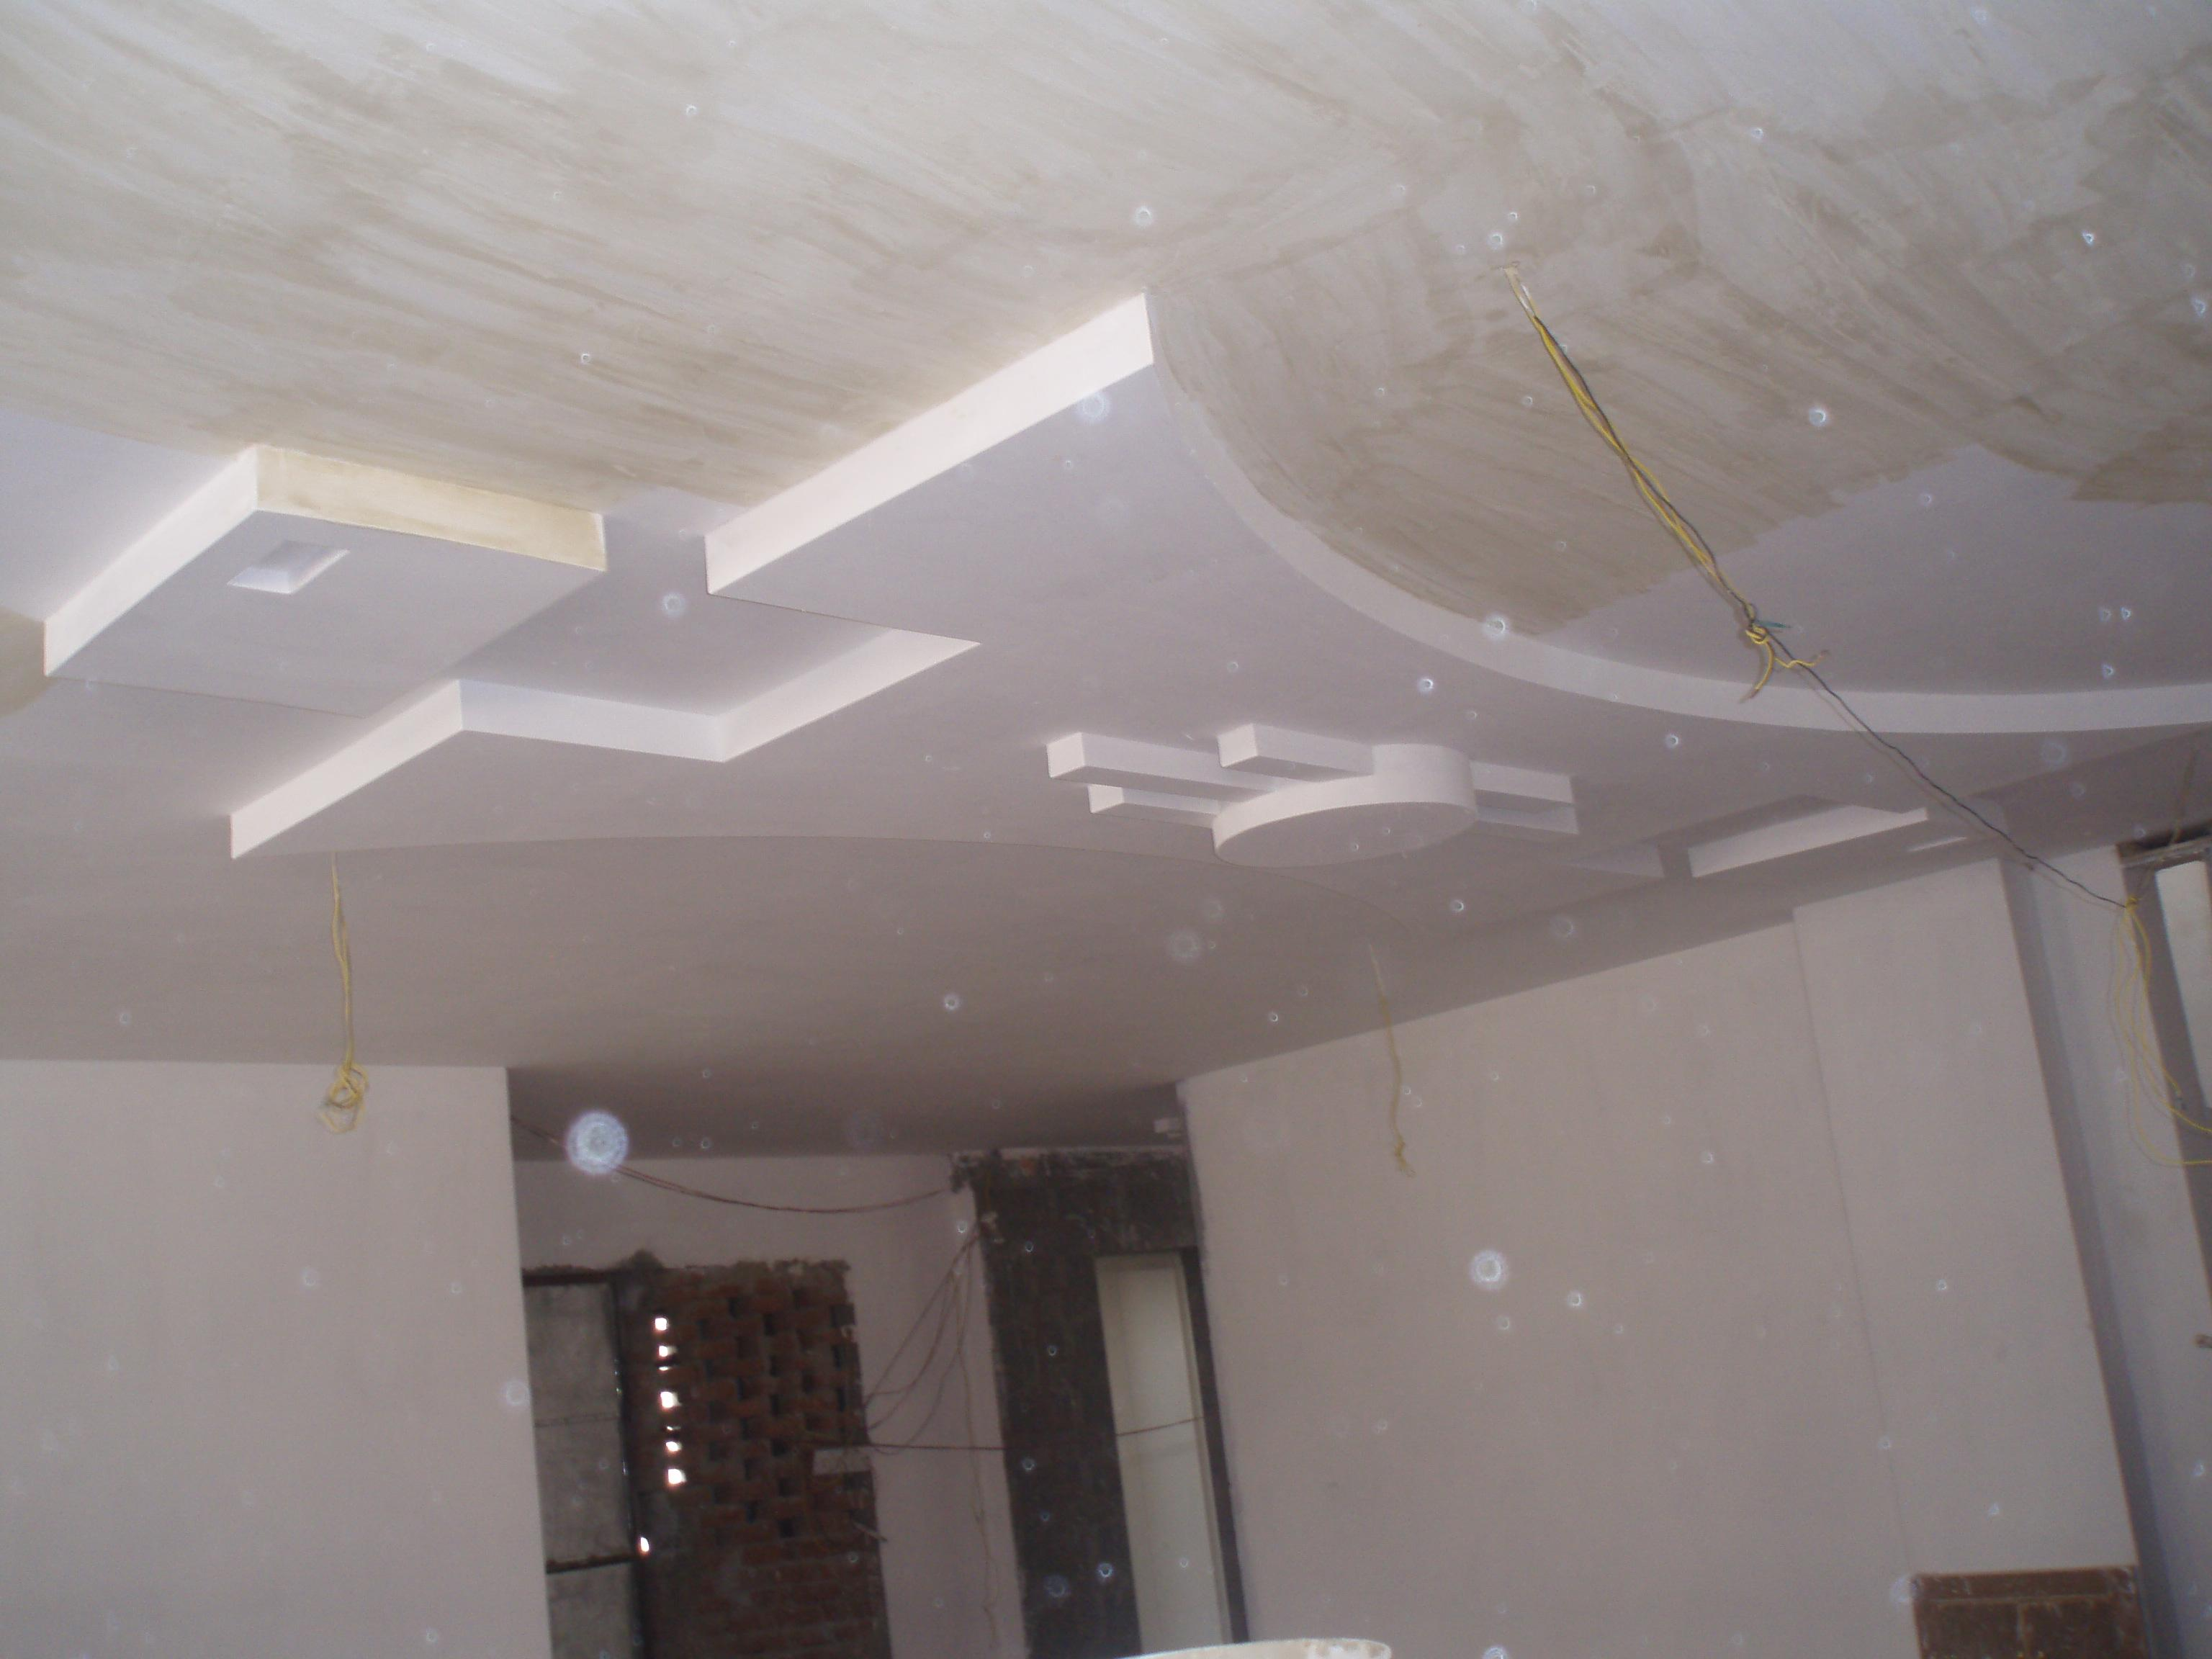 False ceiling photos gharexpert - Bathroom false ceiling designs ...